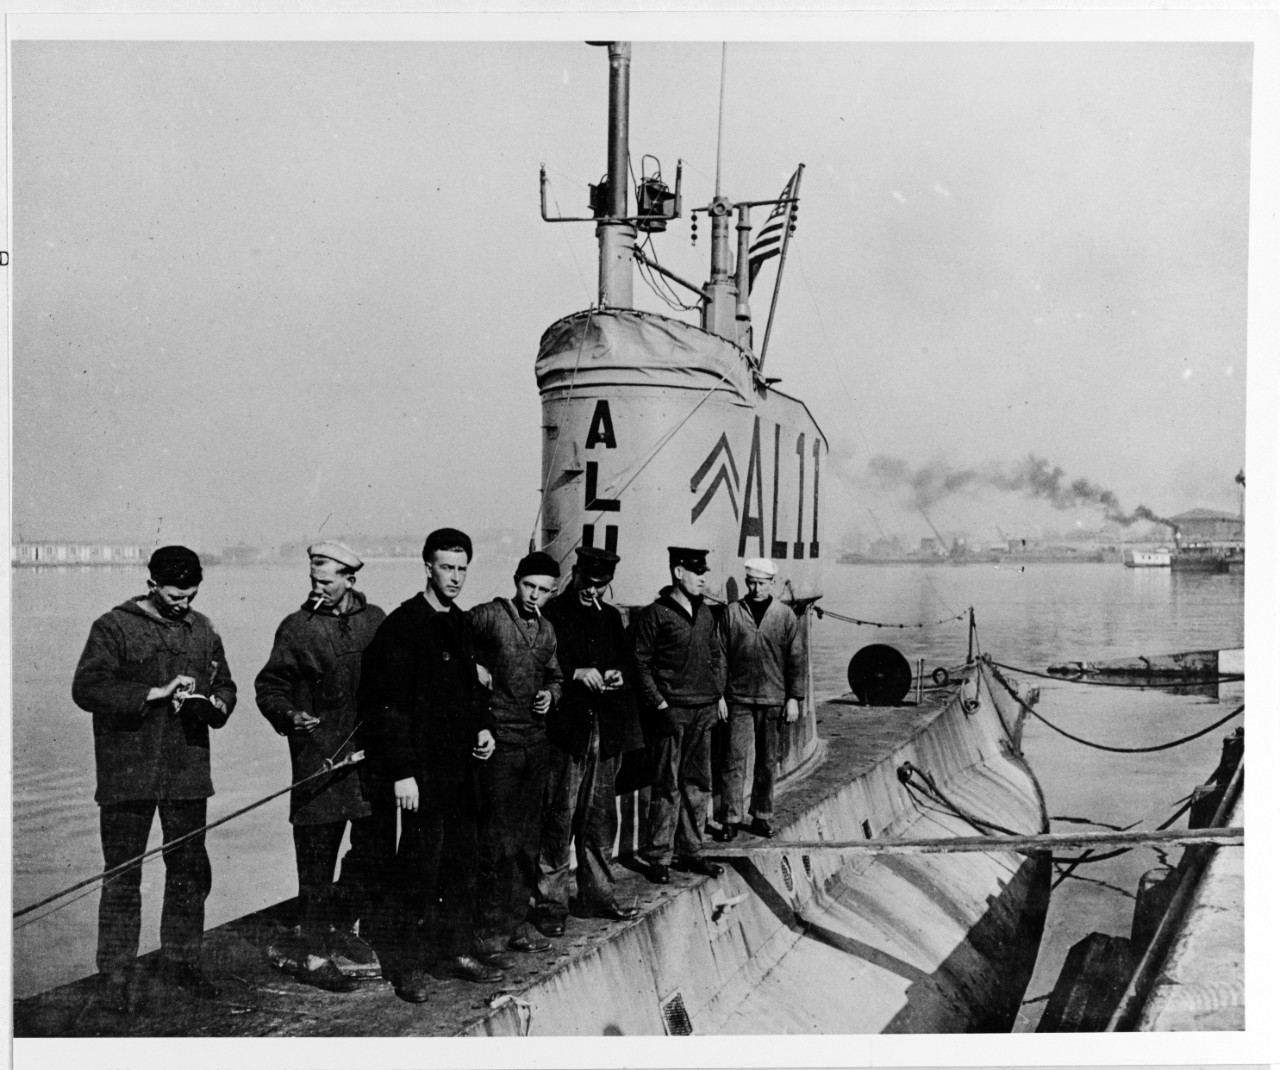 L-11 crew on deck at Philadelphia Navy Yard in 1919. (Naval History and Heritage Command NH 51177)